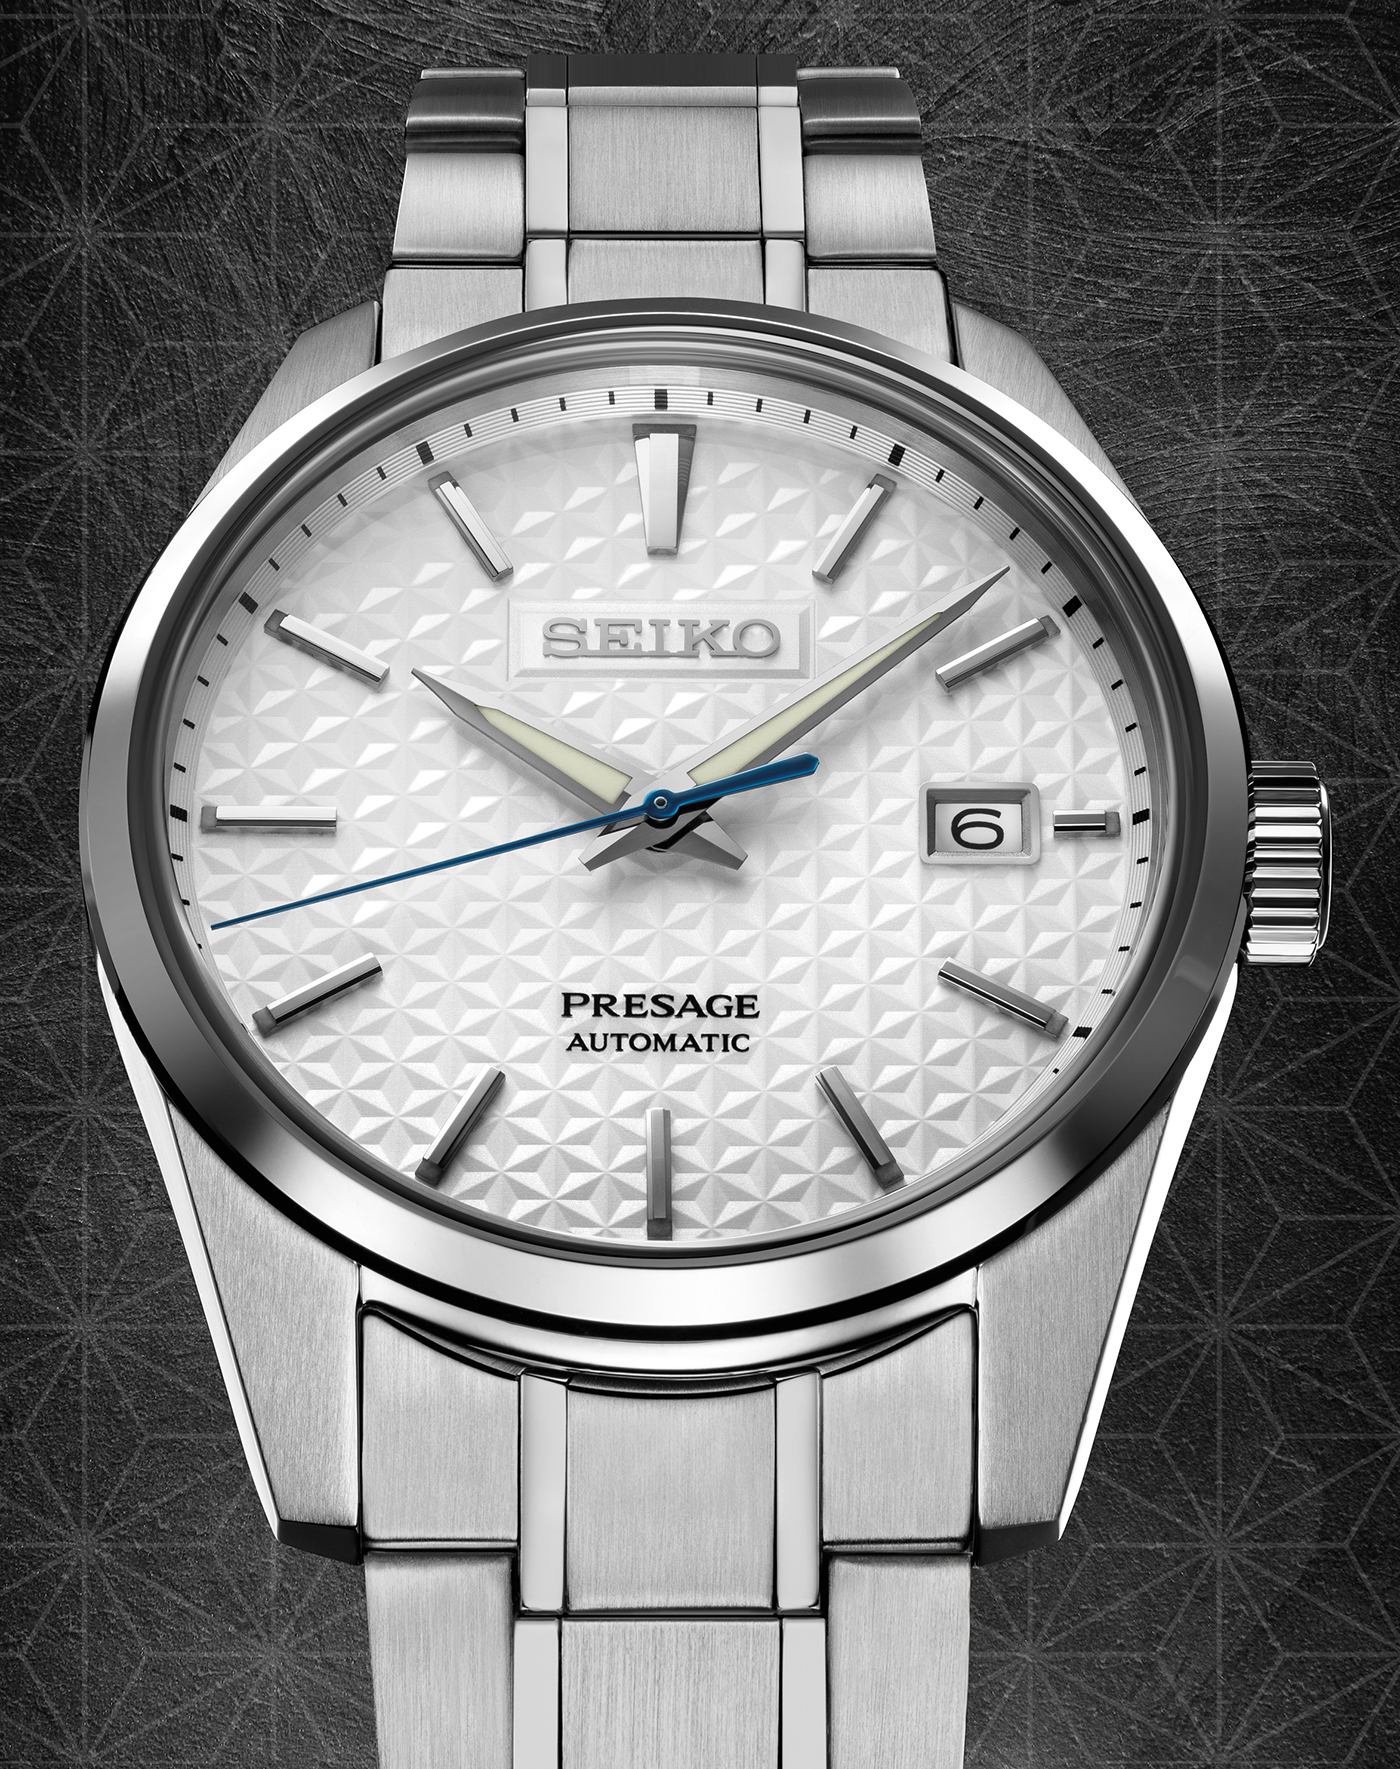 INTRODUCING: The Seiko Presage Sharp Edged Series is yet another competitively priced collection for dial fetishists